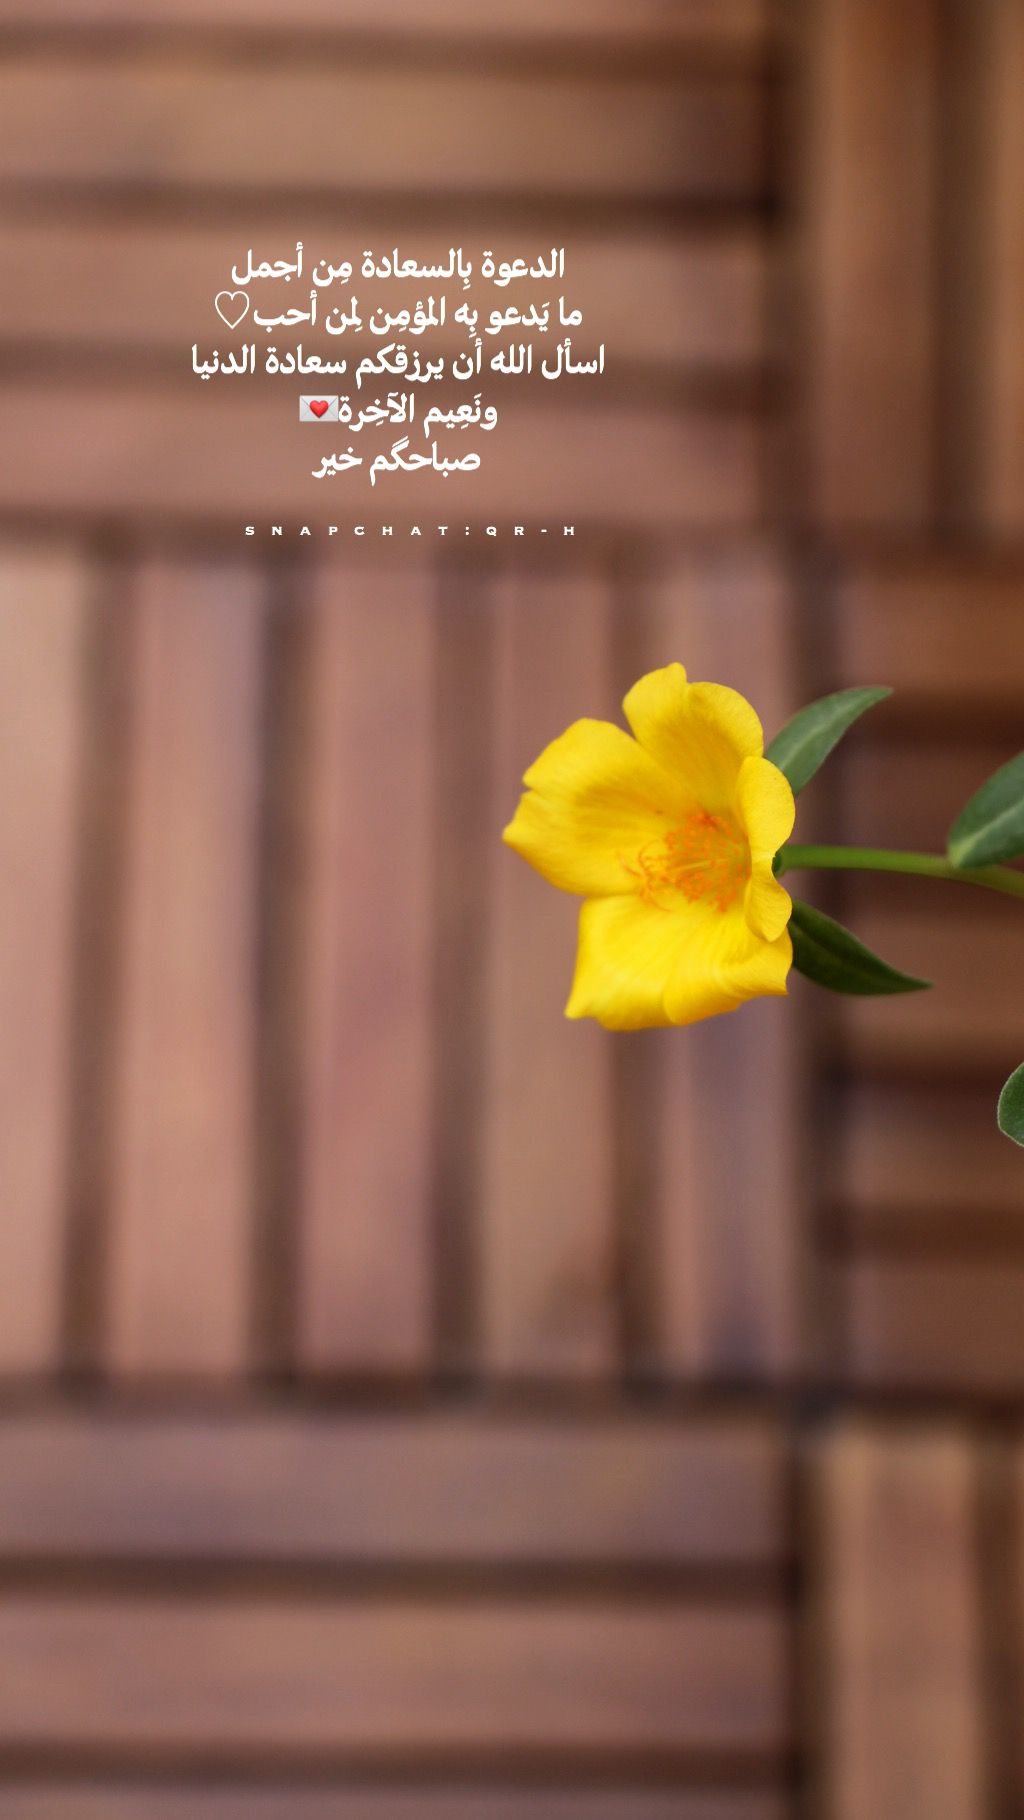 Pin By Jaweher On رمزيات Beautiful Arabic Words Love Husband Quotes Photo Quotes